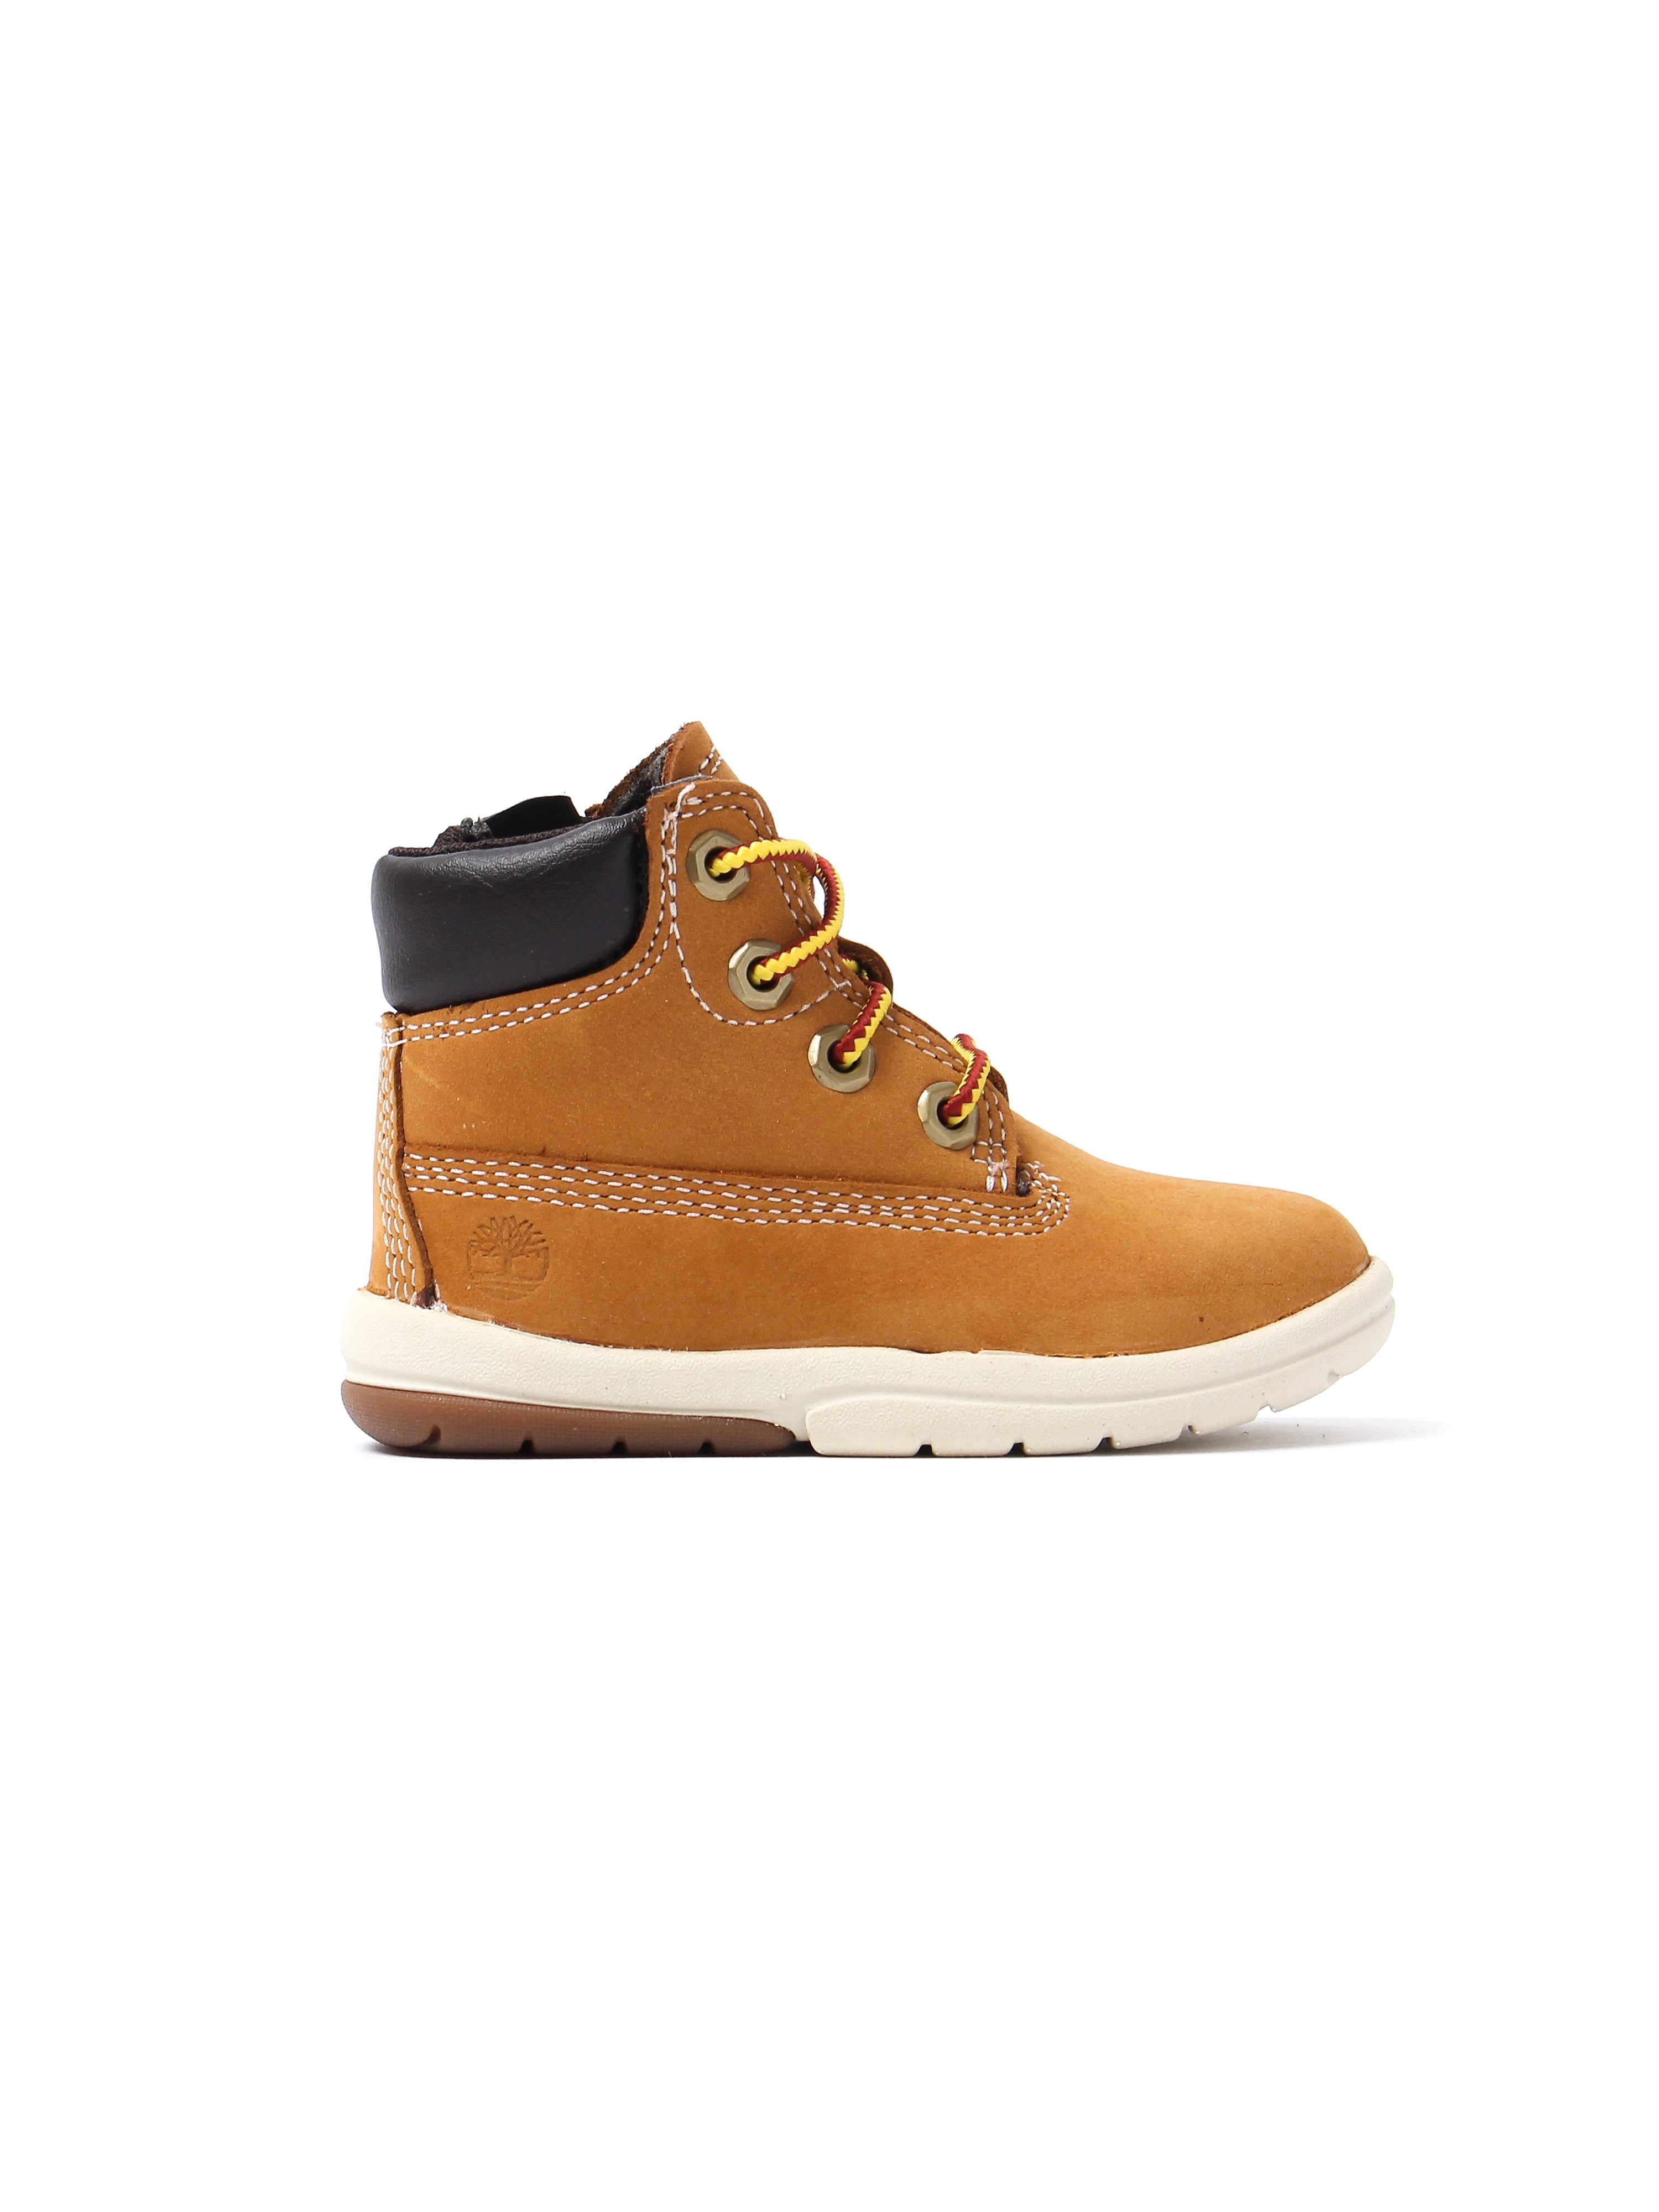 Timberland Infant New Toddle Tracks 6 Inch Boots - Wheat